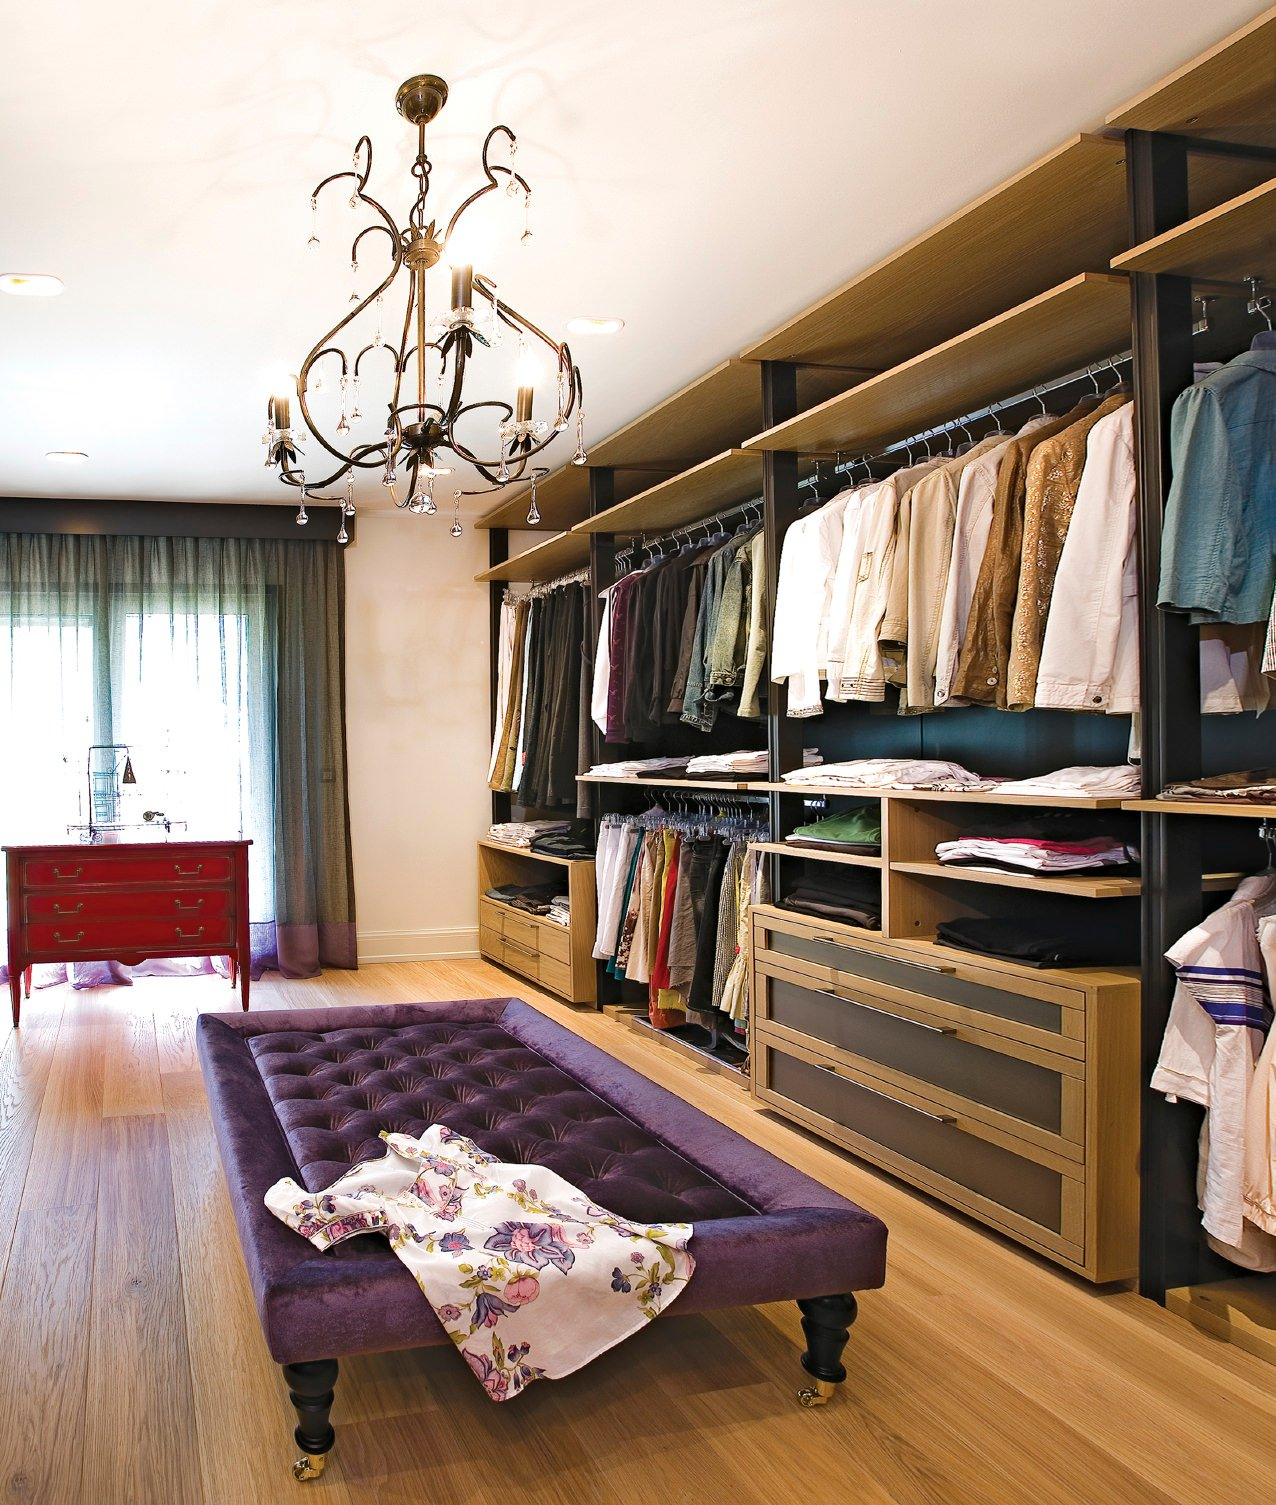 This bedroom closet features a hardwood flooring matching the cabinetry. The gorgeous chandelier lights up the room.